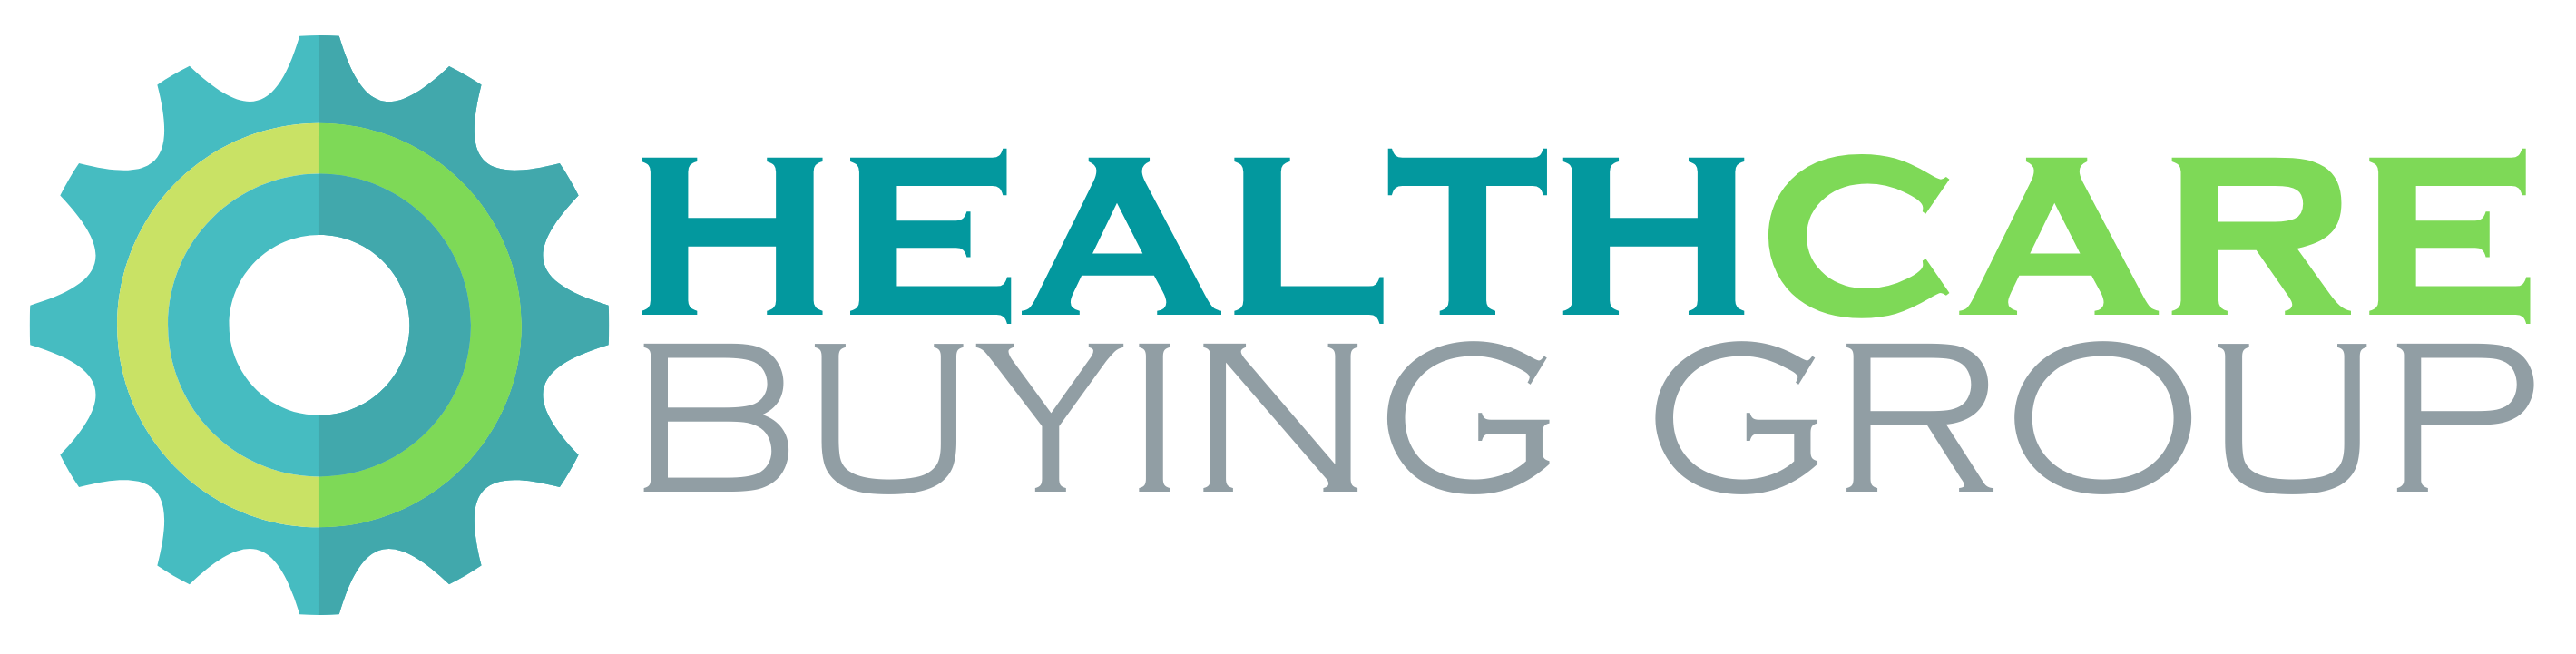 Healthcare Buying Group